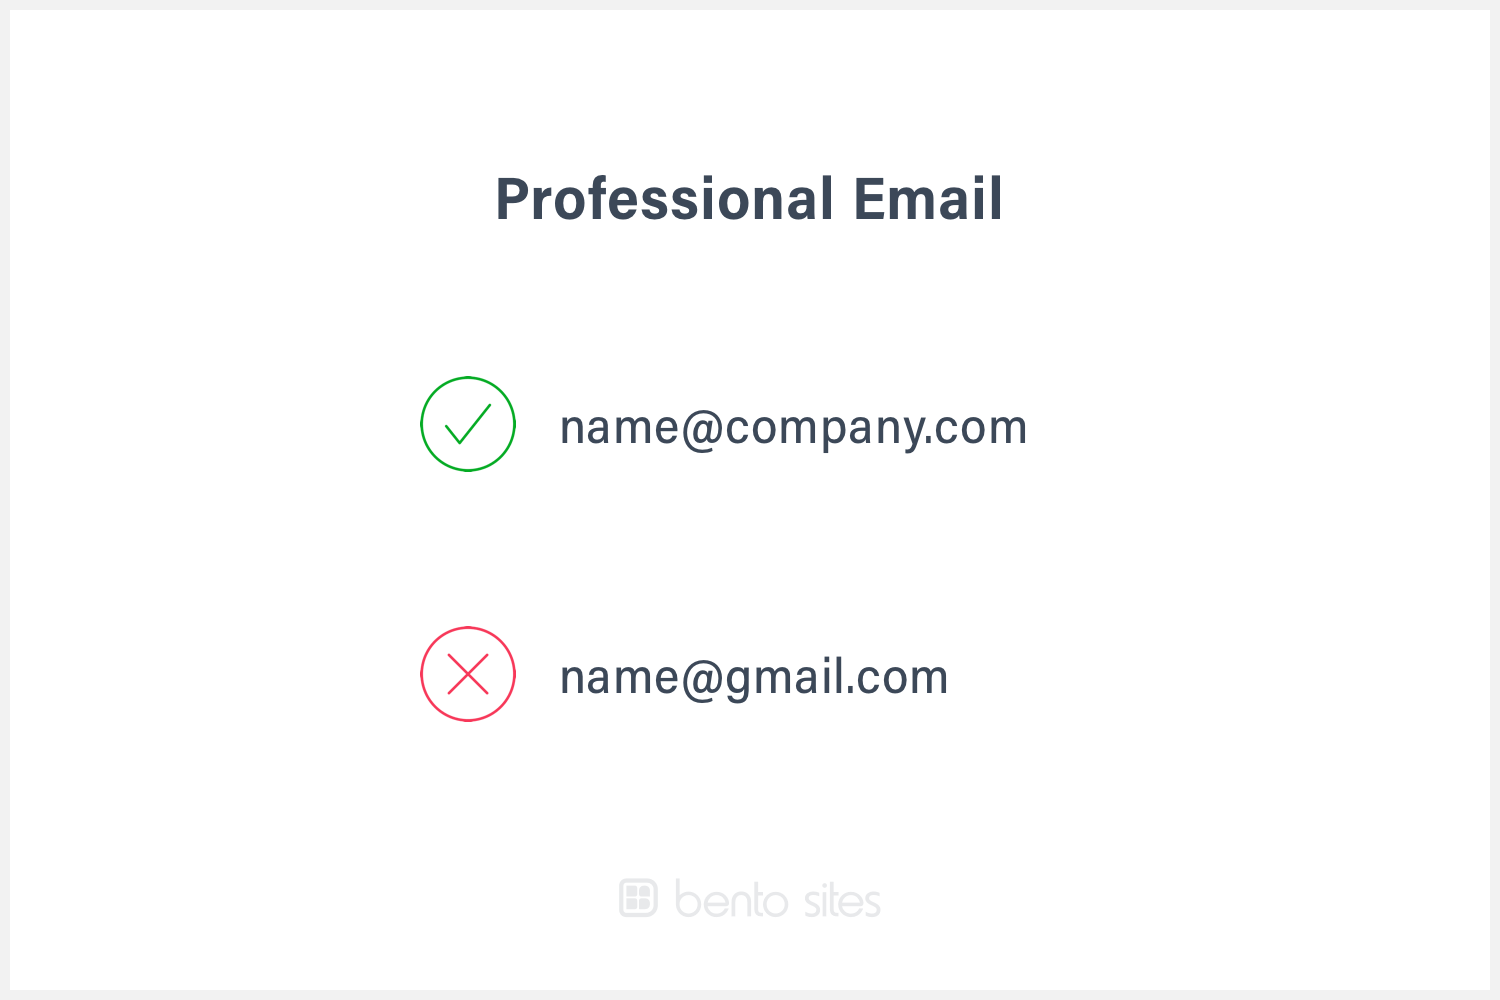 Example of professional email (name@company.com).